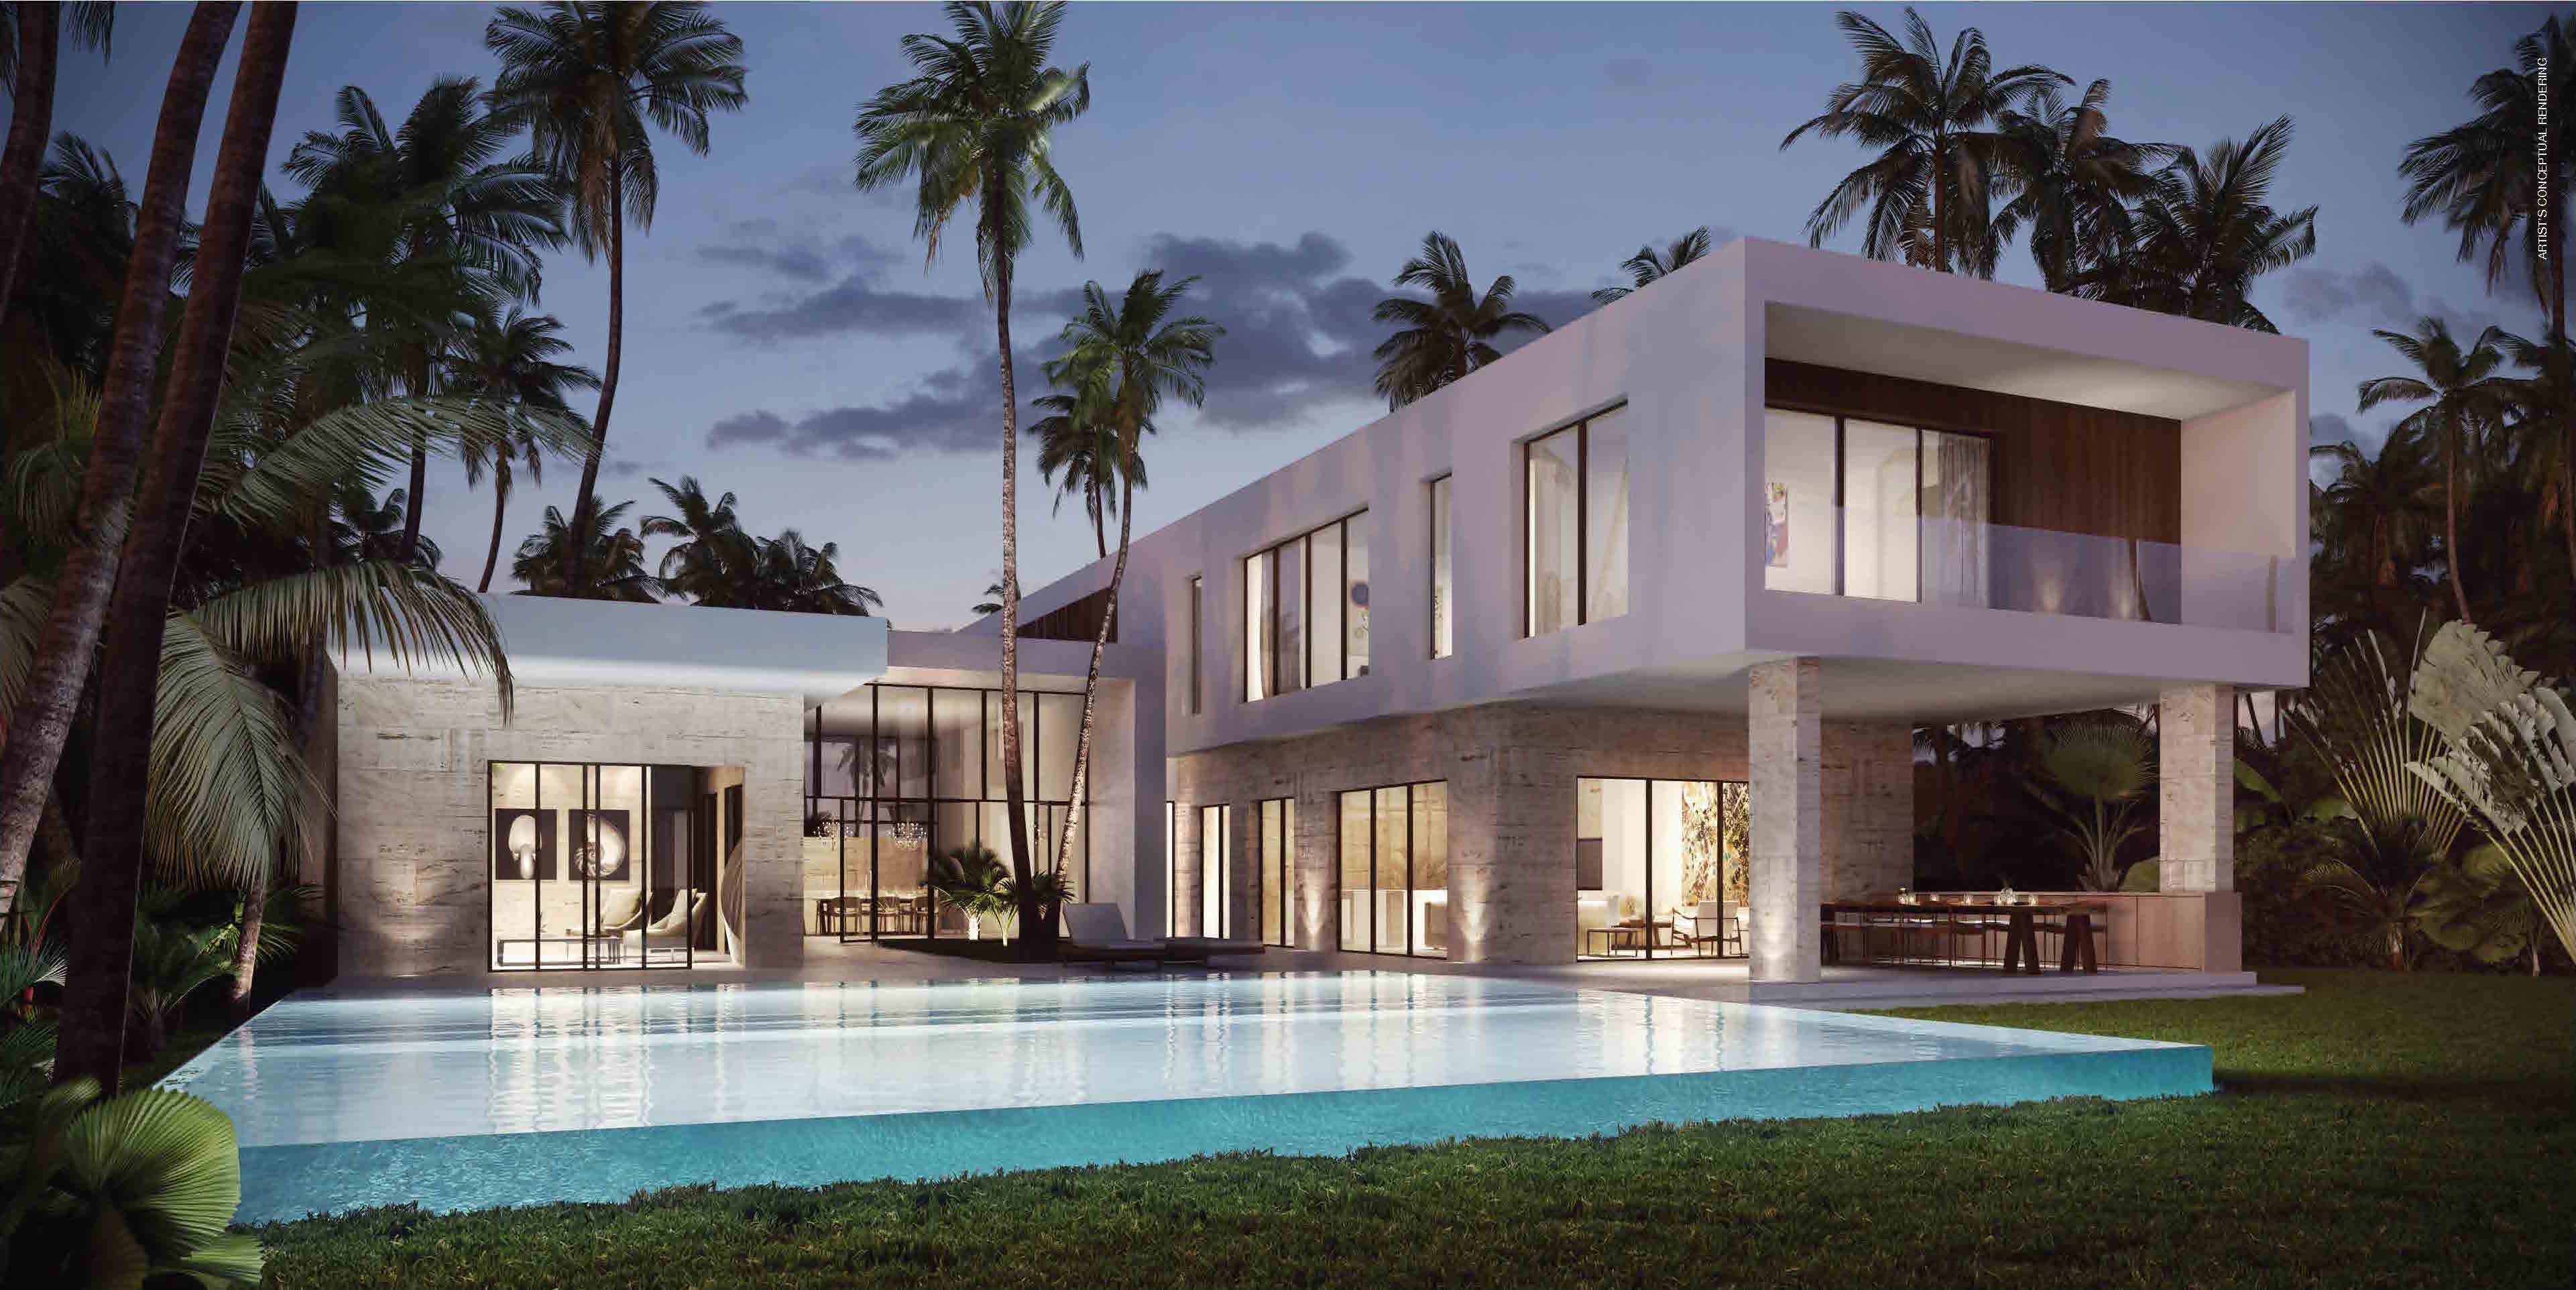 Botaniko weston ultra modern luxury in weston florida for Modern houses in florida